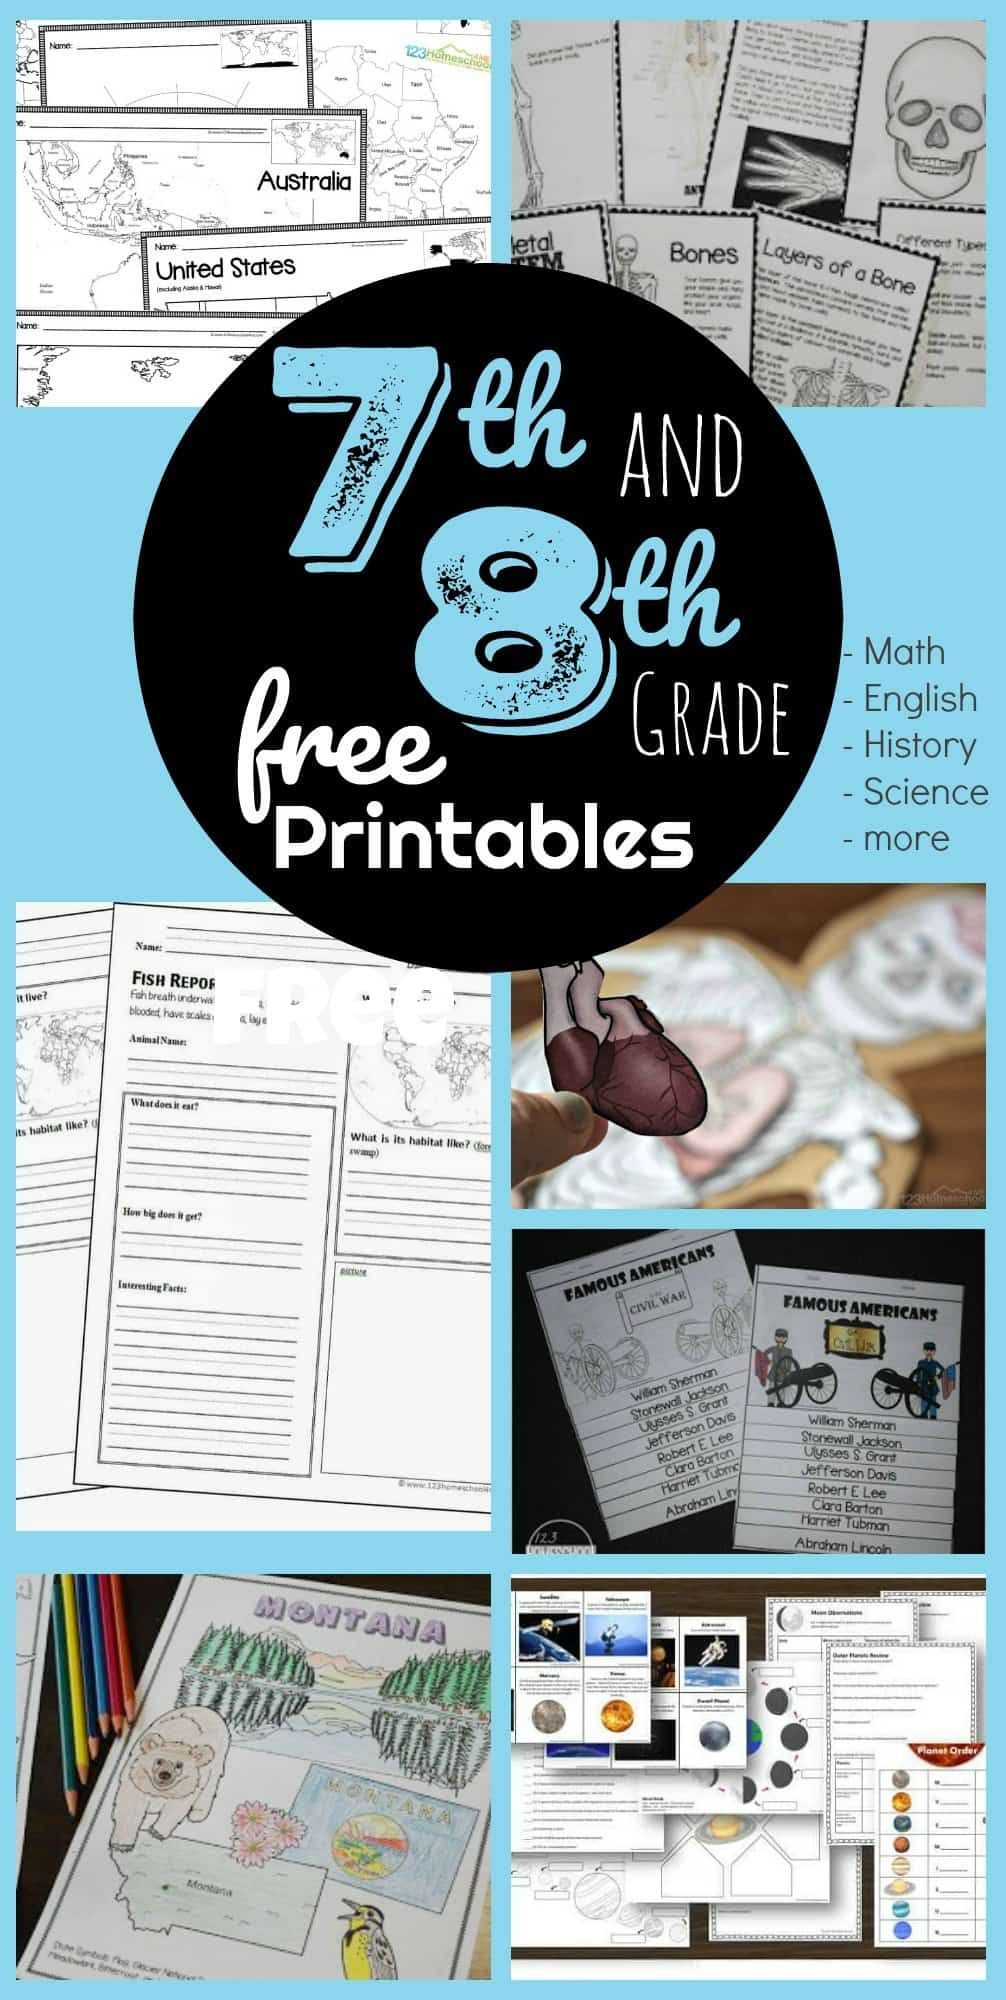 Science Worksheets For 8th Grade Free 7th 8th Grade Worksheets Geography Worksheets Science Worksheets 7th Grade Science